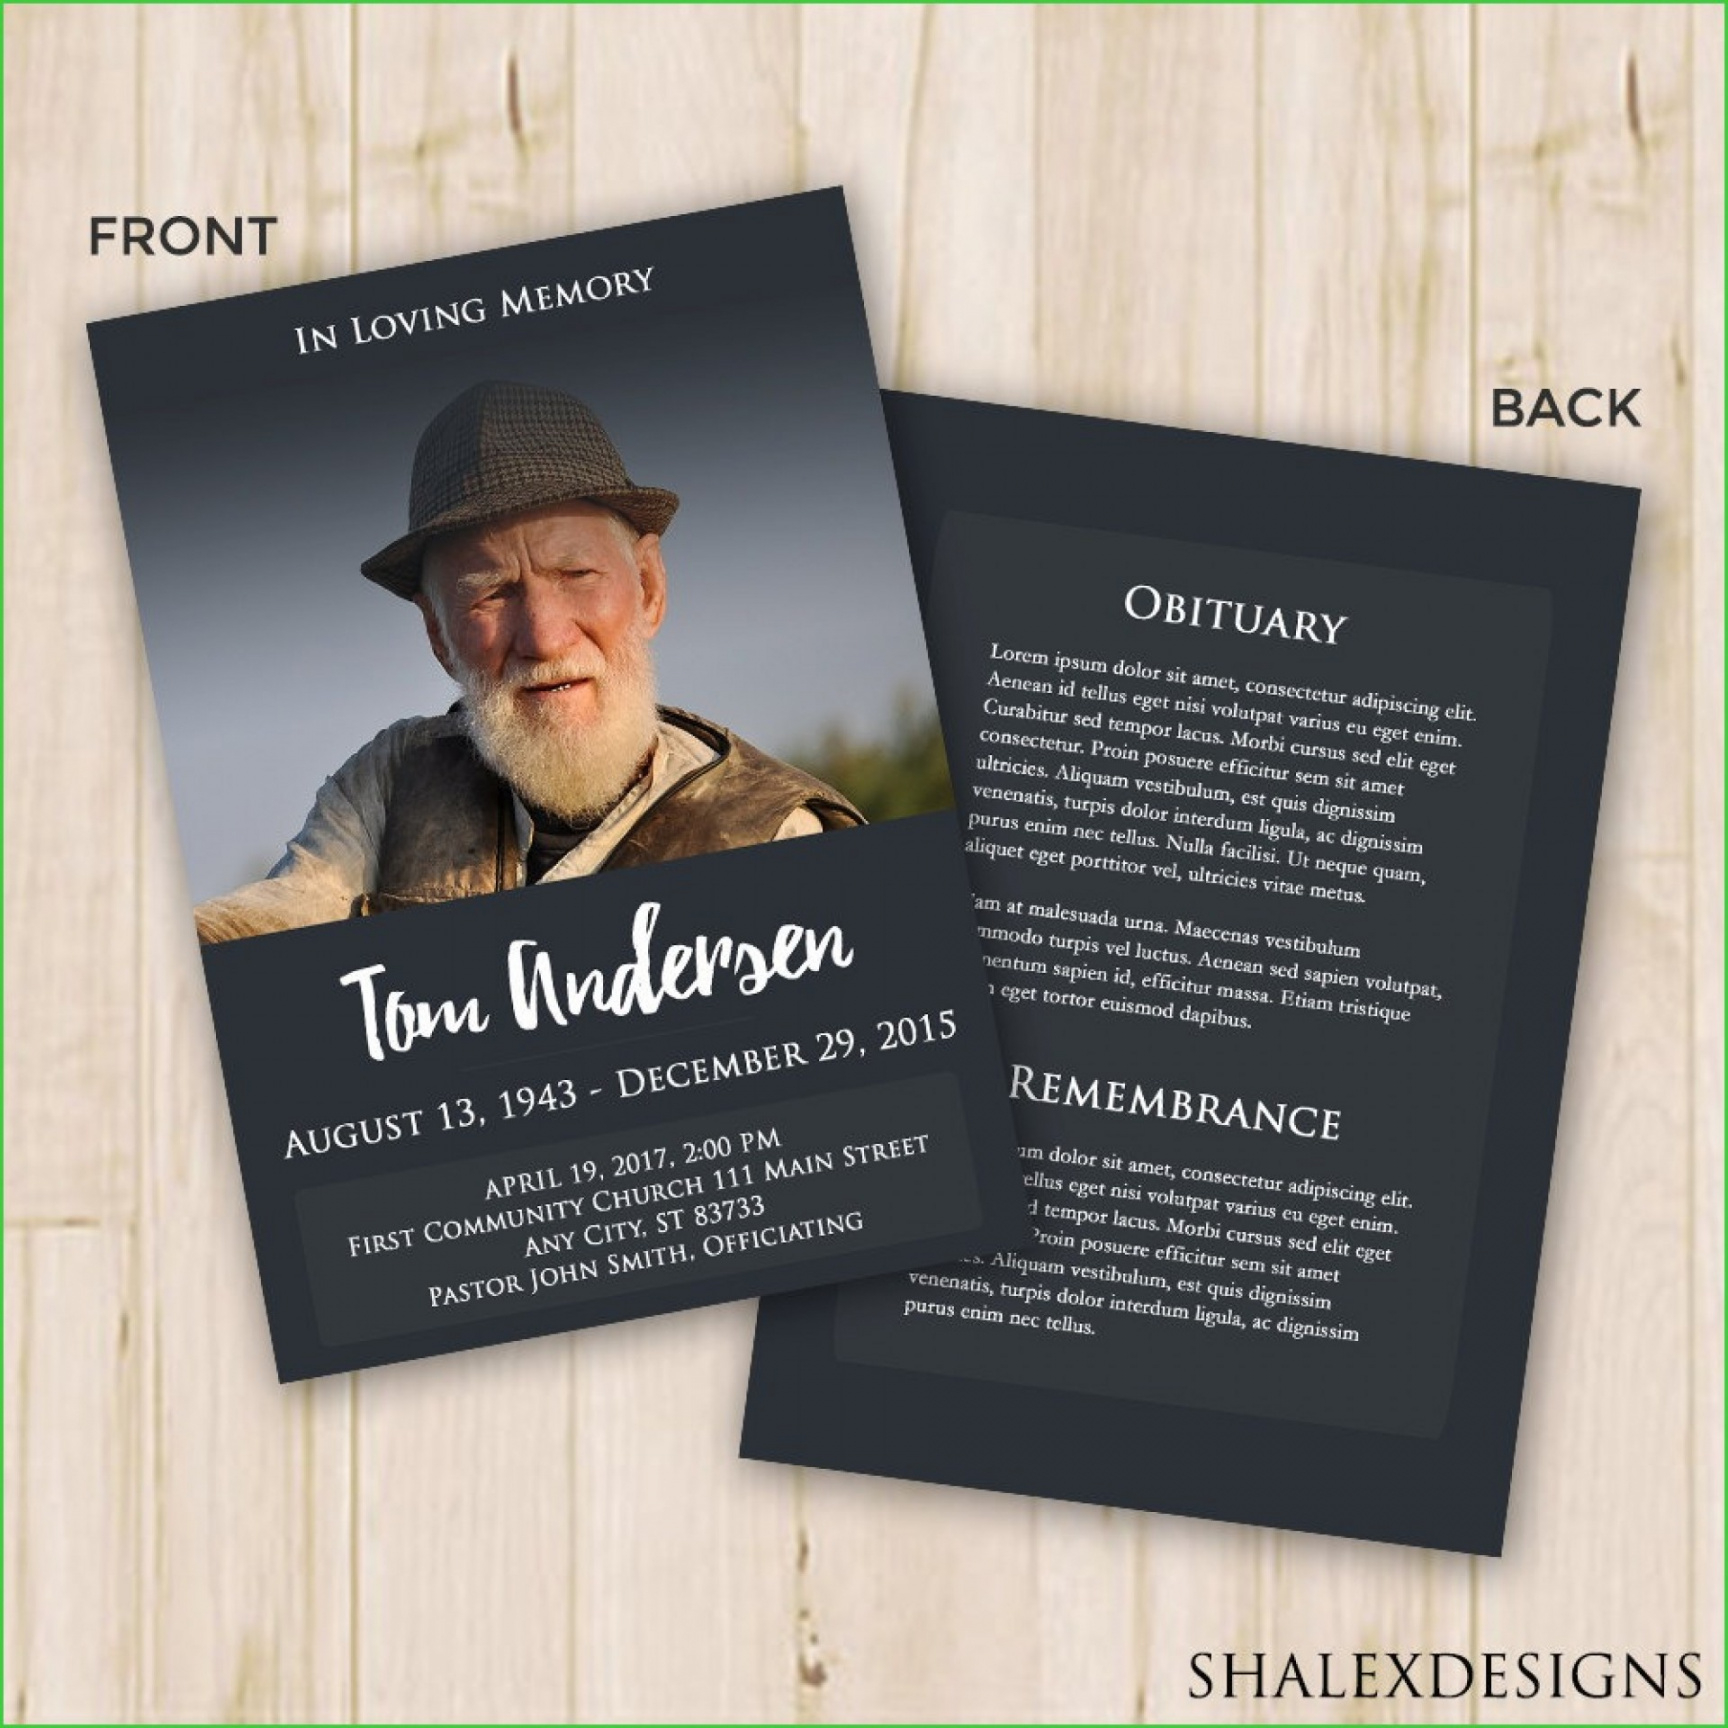 This Is 011 Memorial Service Template Free Ideas ~ Ulyssesroom Memorial Service Flyer Template Png